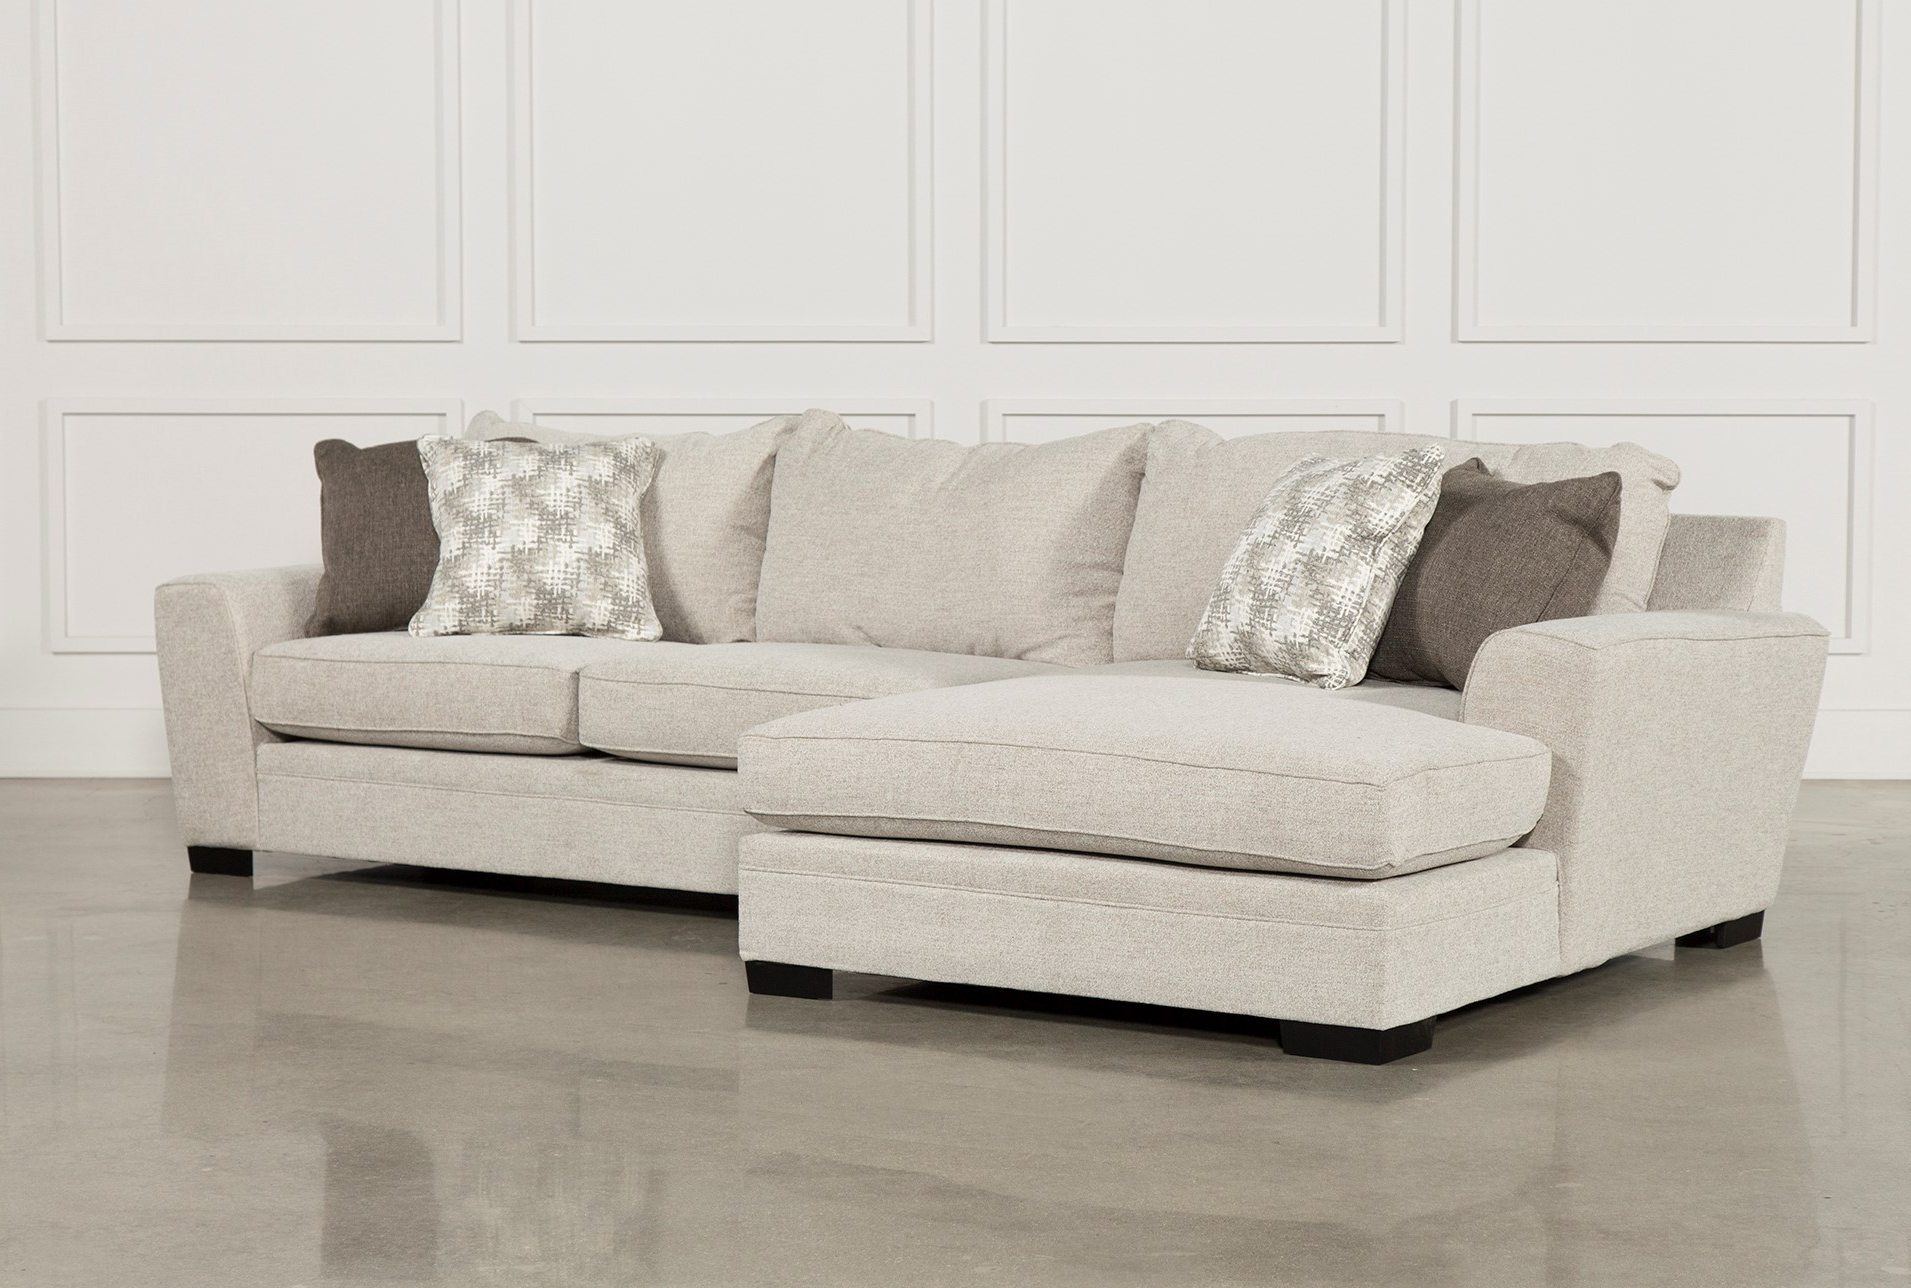 2 Piece Sectional With Chaise – Tidex With Regard To Current Avery 2 Piece Sectionals With Laf Armless Chaise (View 3 of 20)